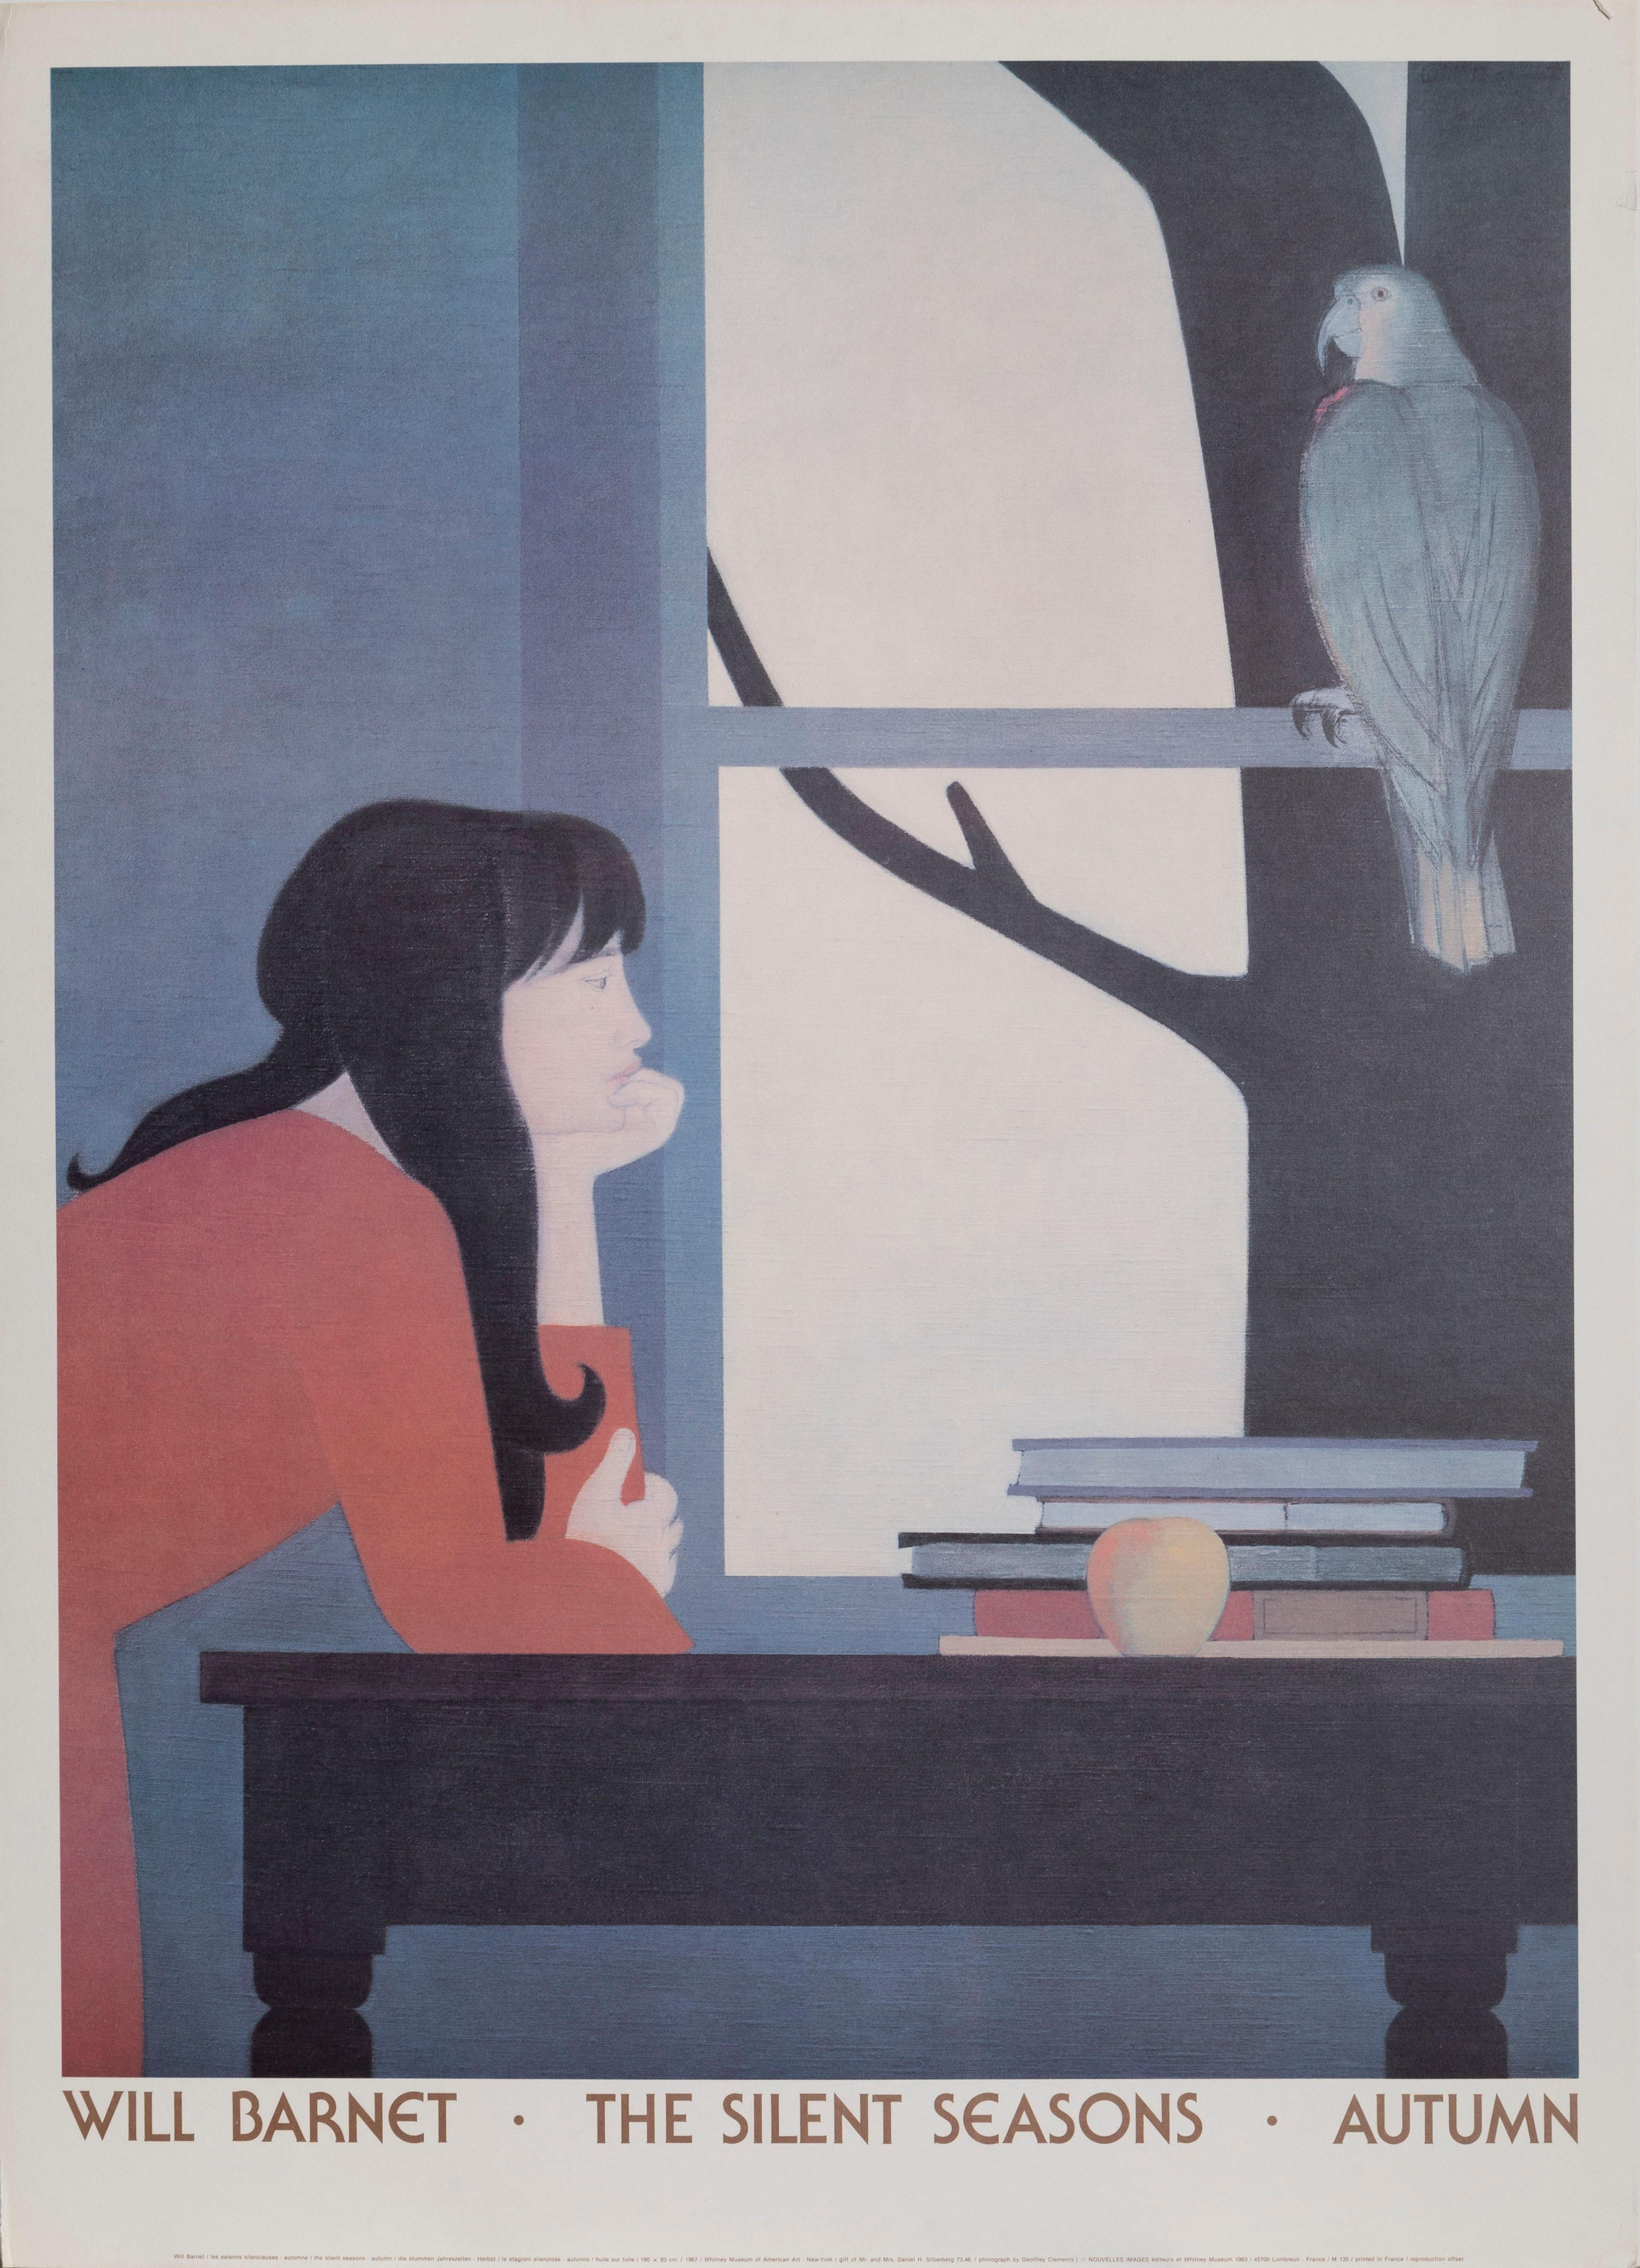 Will Barnet, The Silent Seasons - Autumn, Poster on board